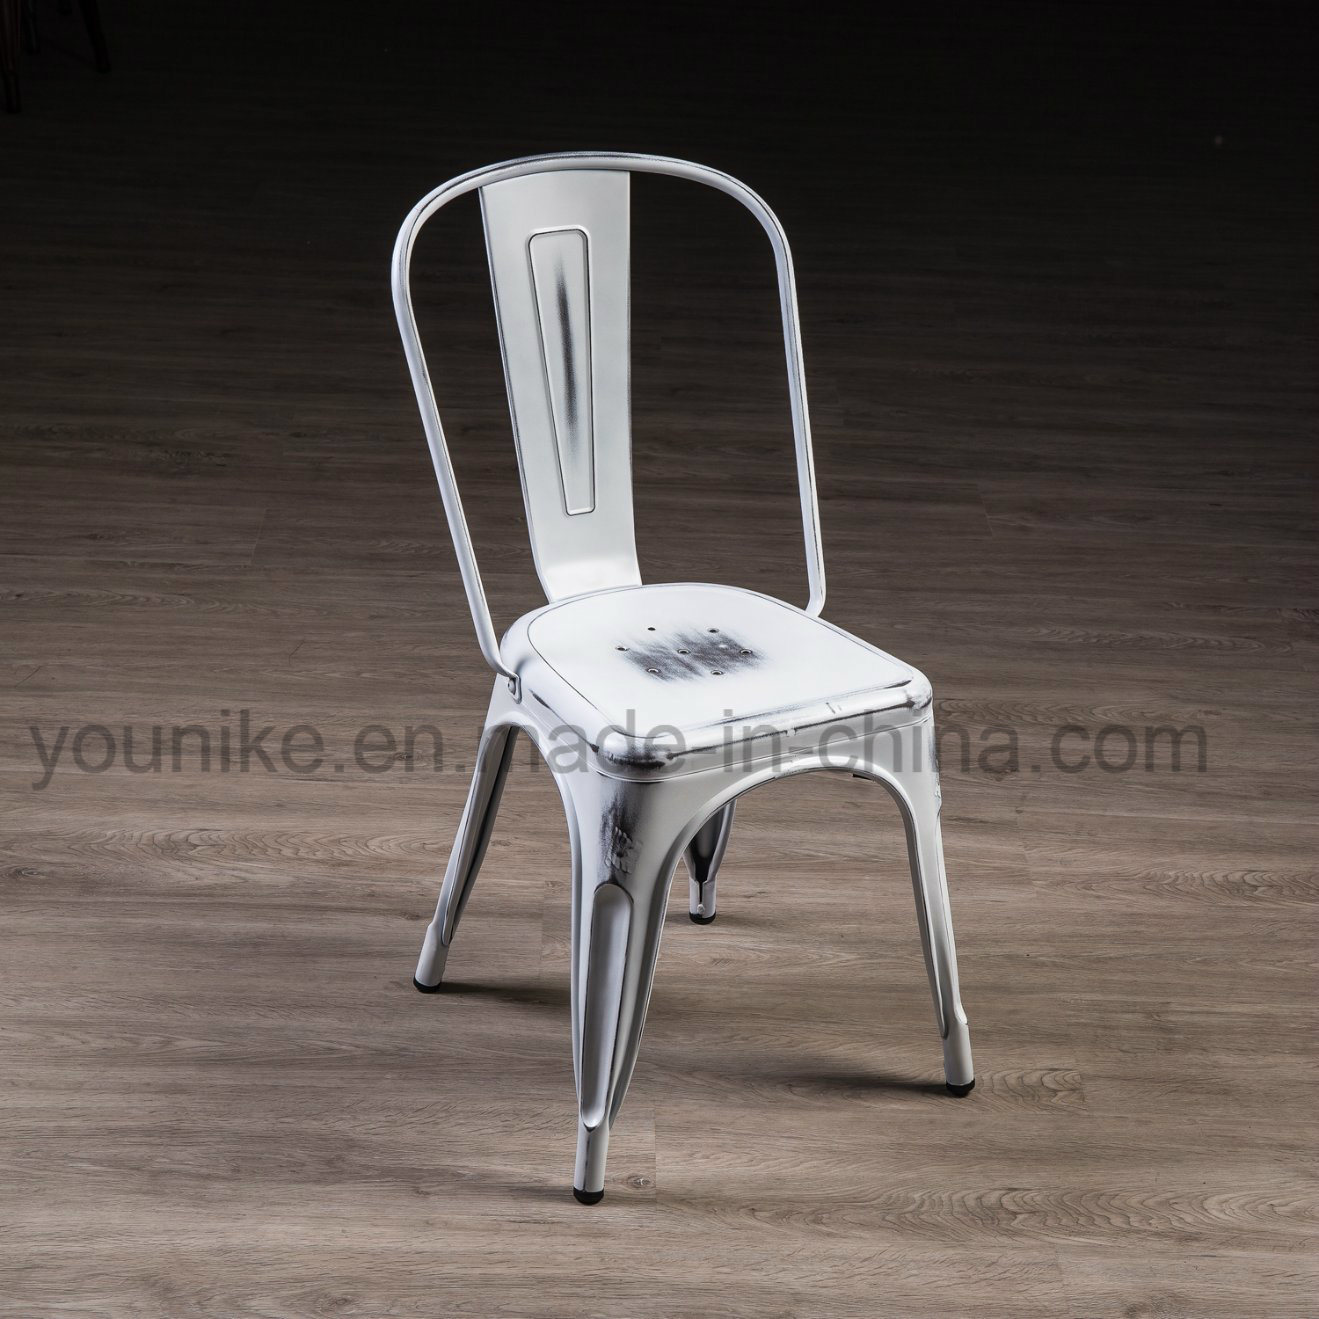 China Vintage Tolix Chair